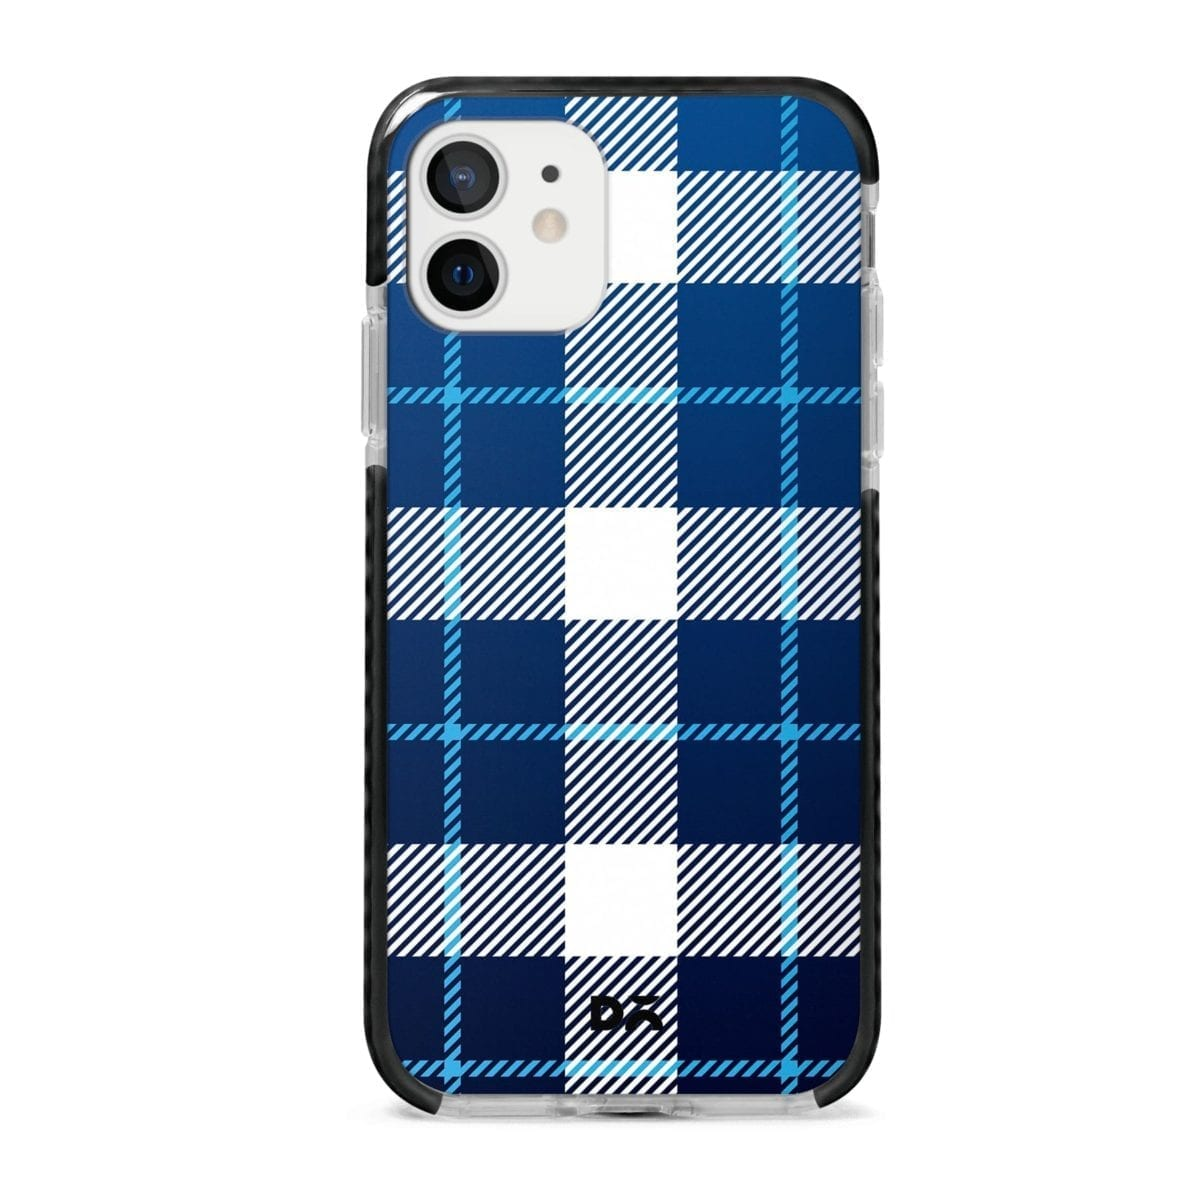 Nightfall Rope Checks Checks Stride Case Cover for Apple iPhone 12 Mini and Apple iPhone 12 with great design and shock proof | Klippik | Online Shopping | Kuwait UAE Saudi